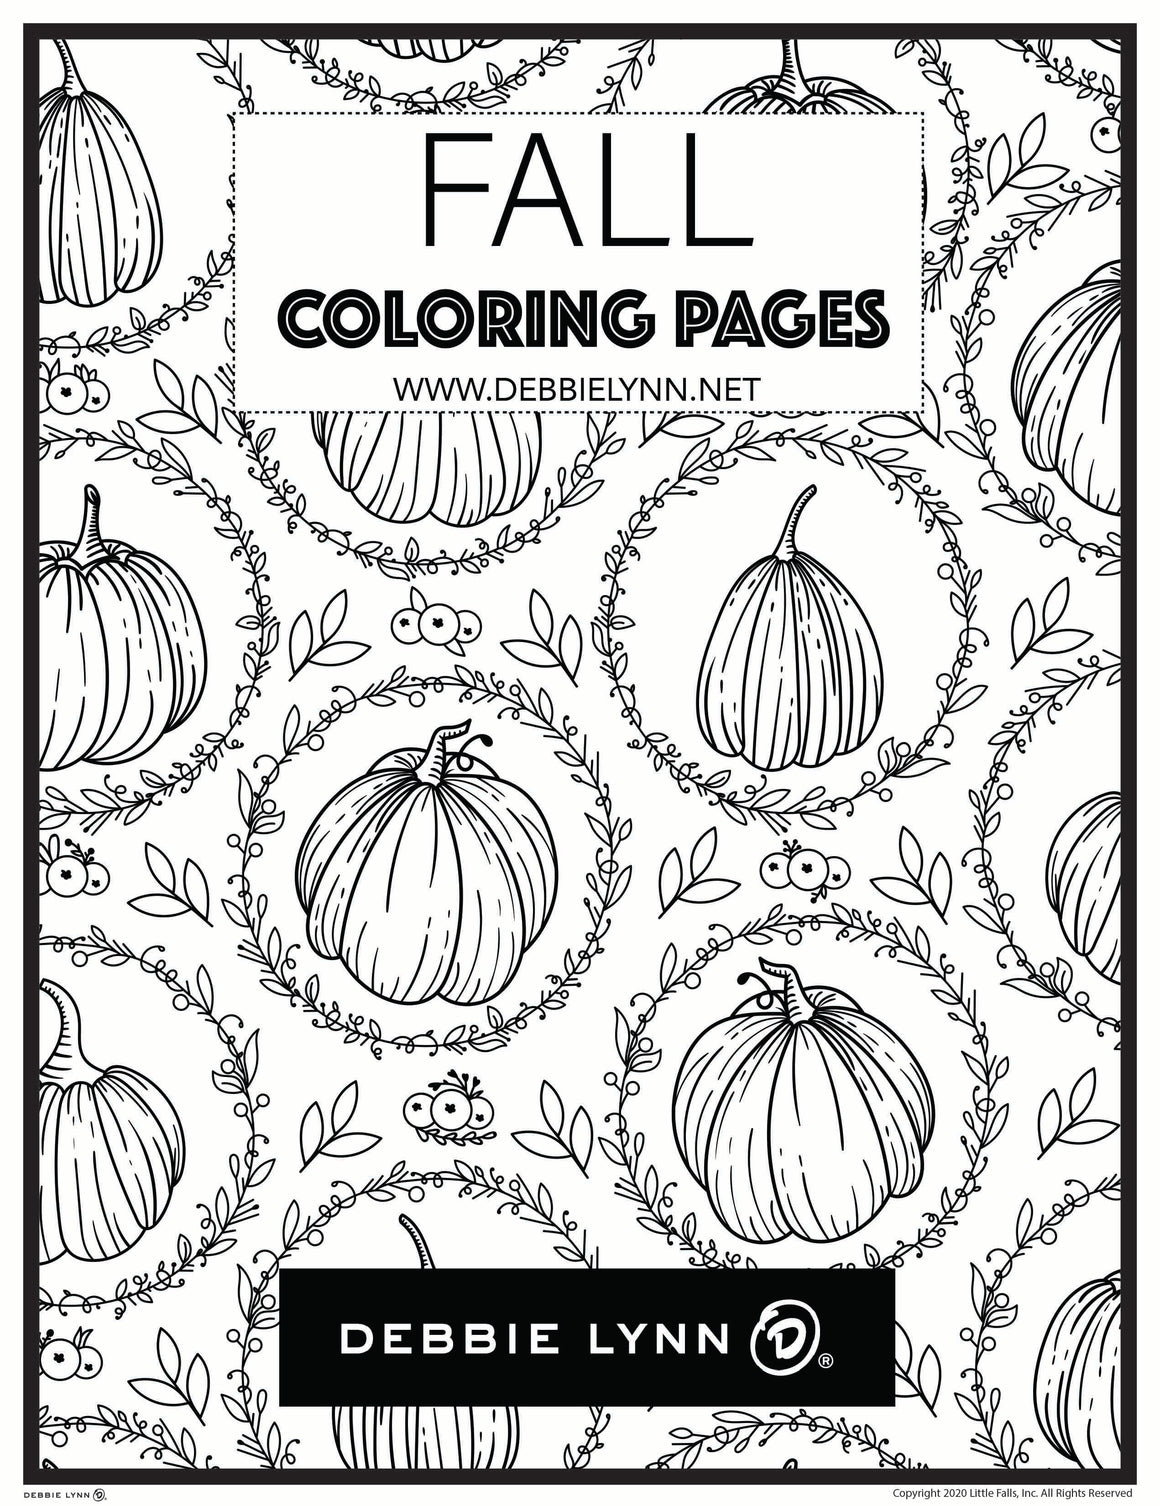 FALL COLORING BOOK 30 PAGES